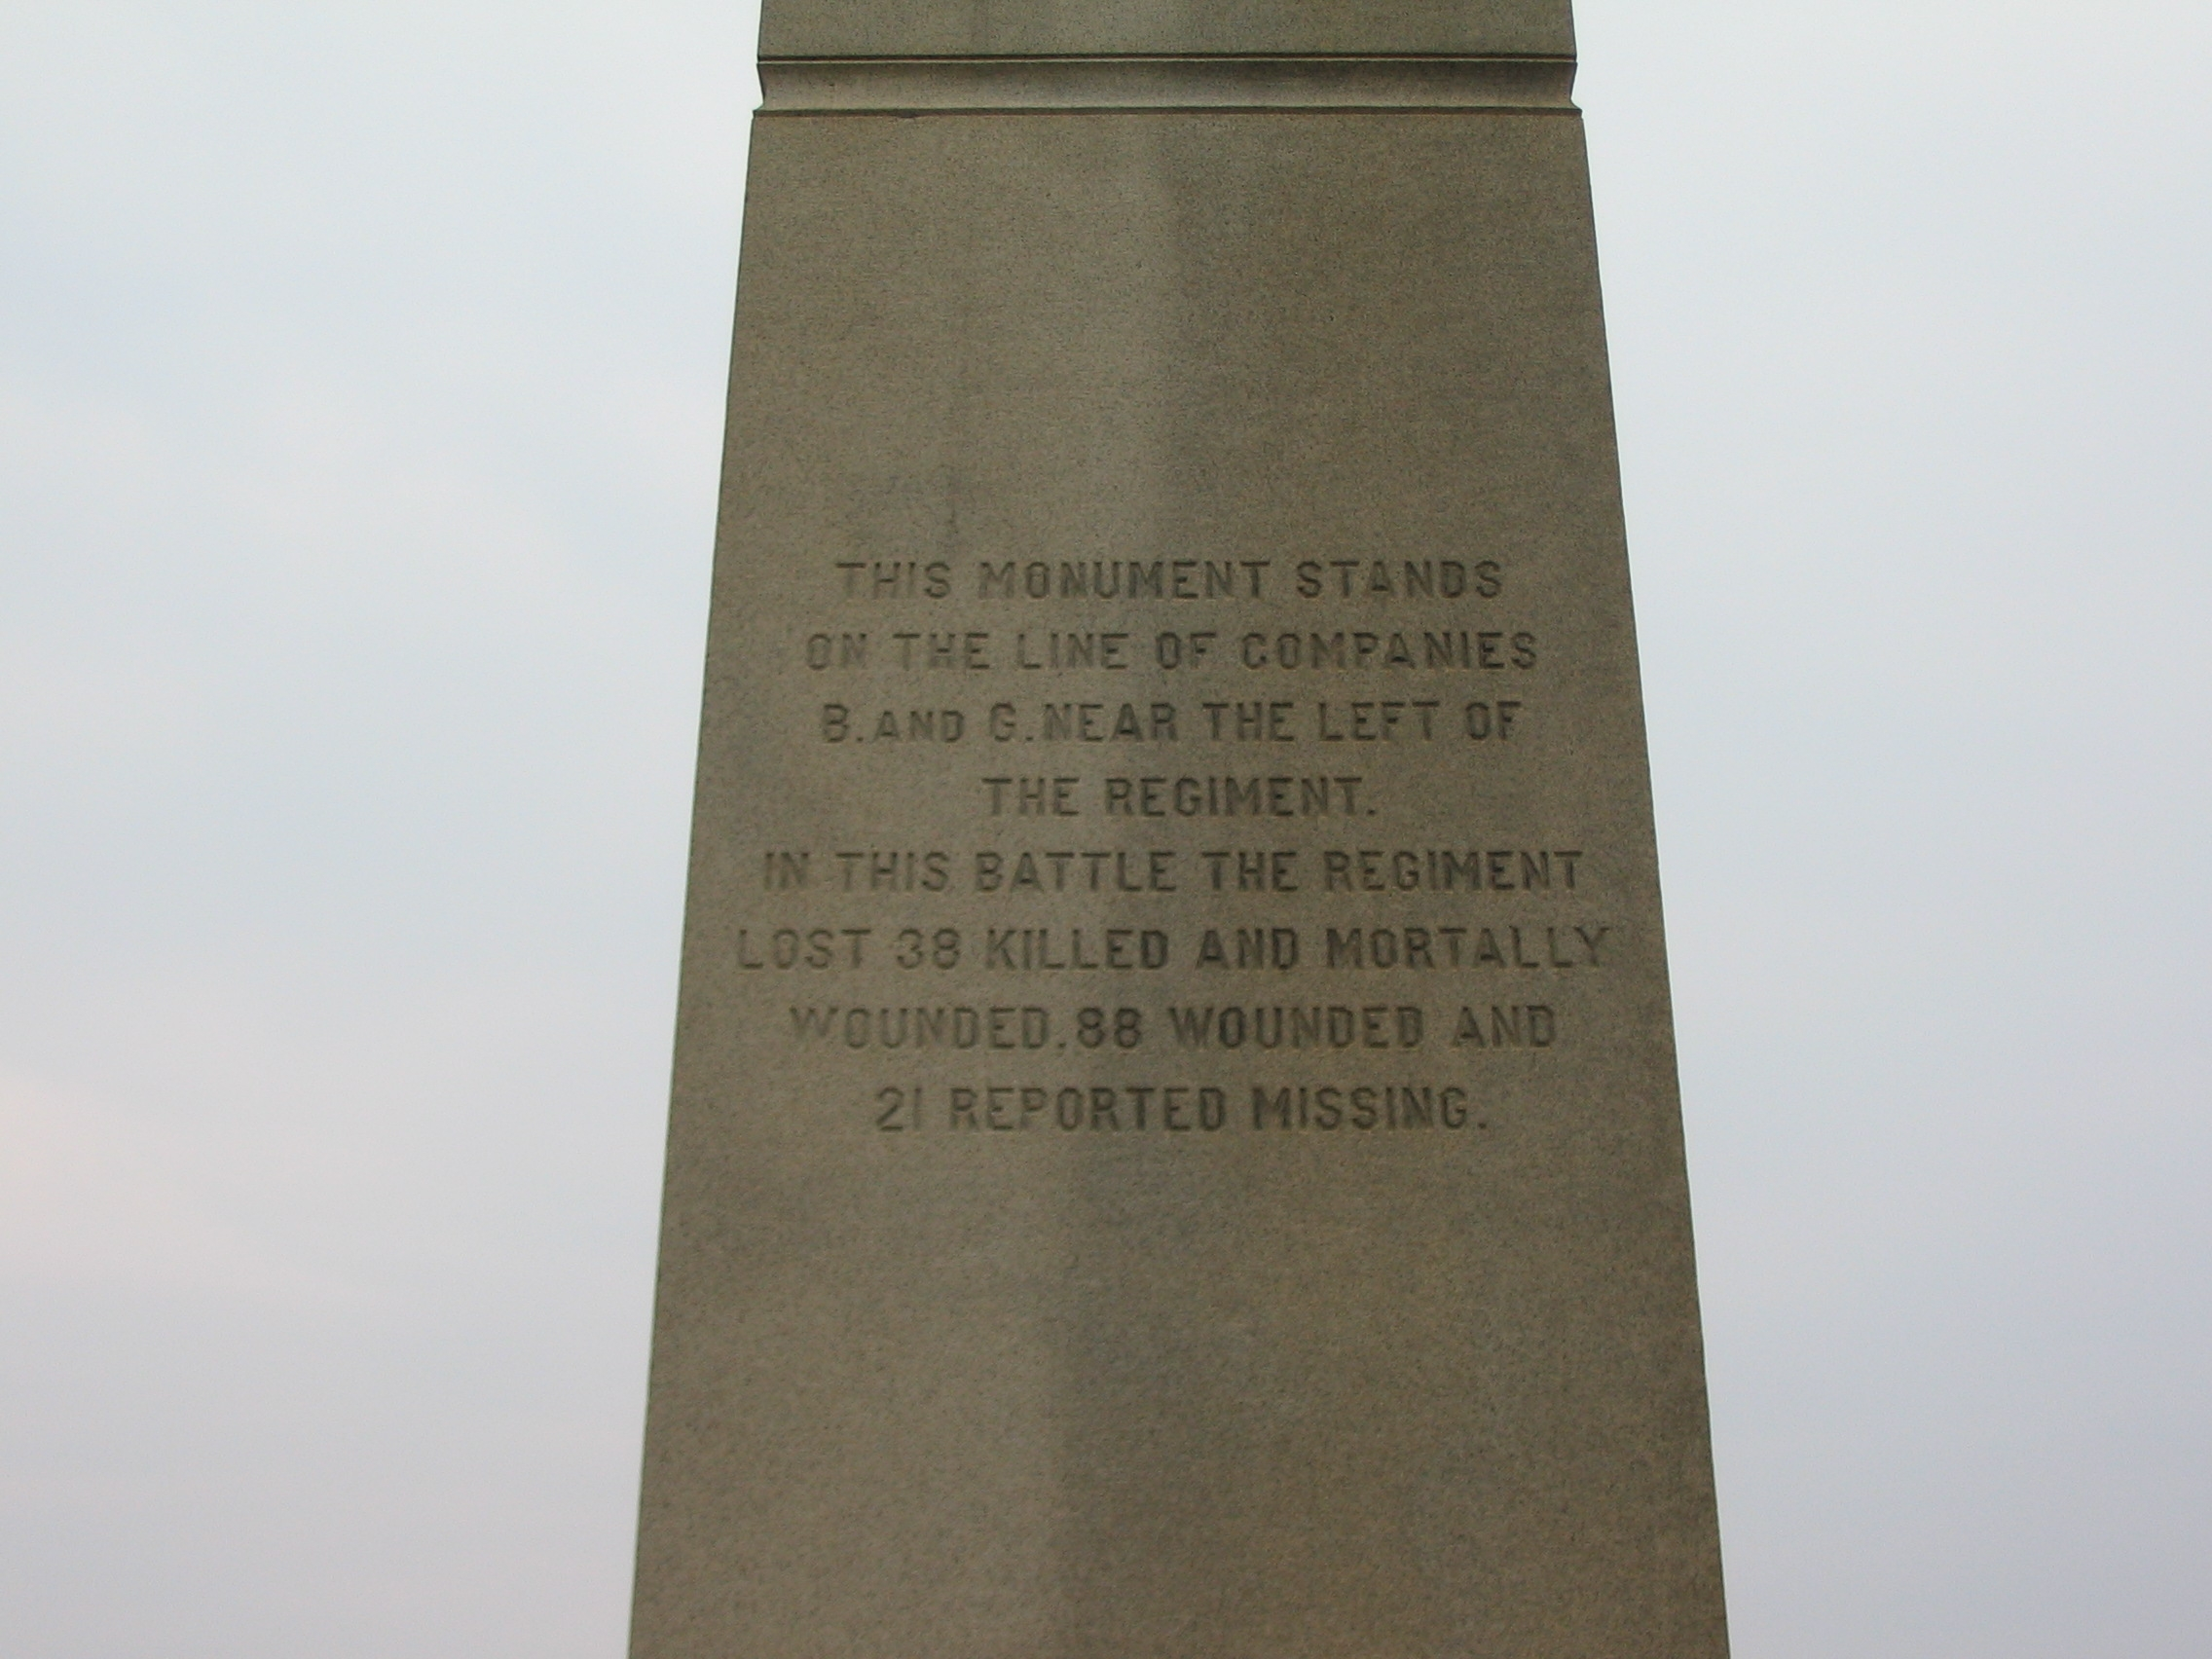 Left Side of Monument